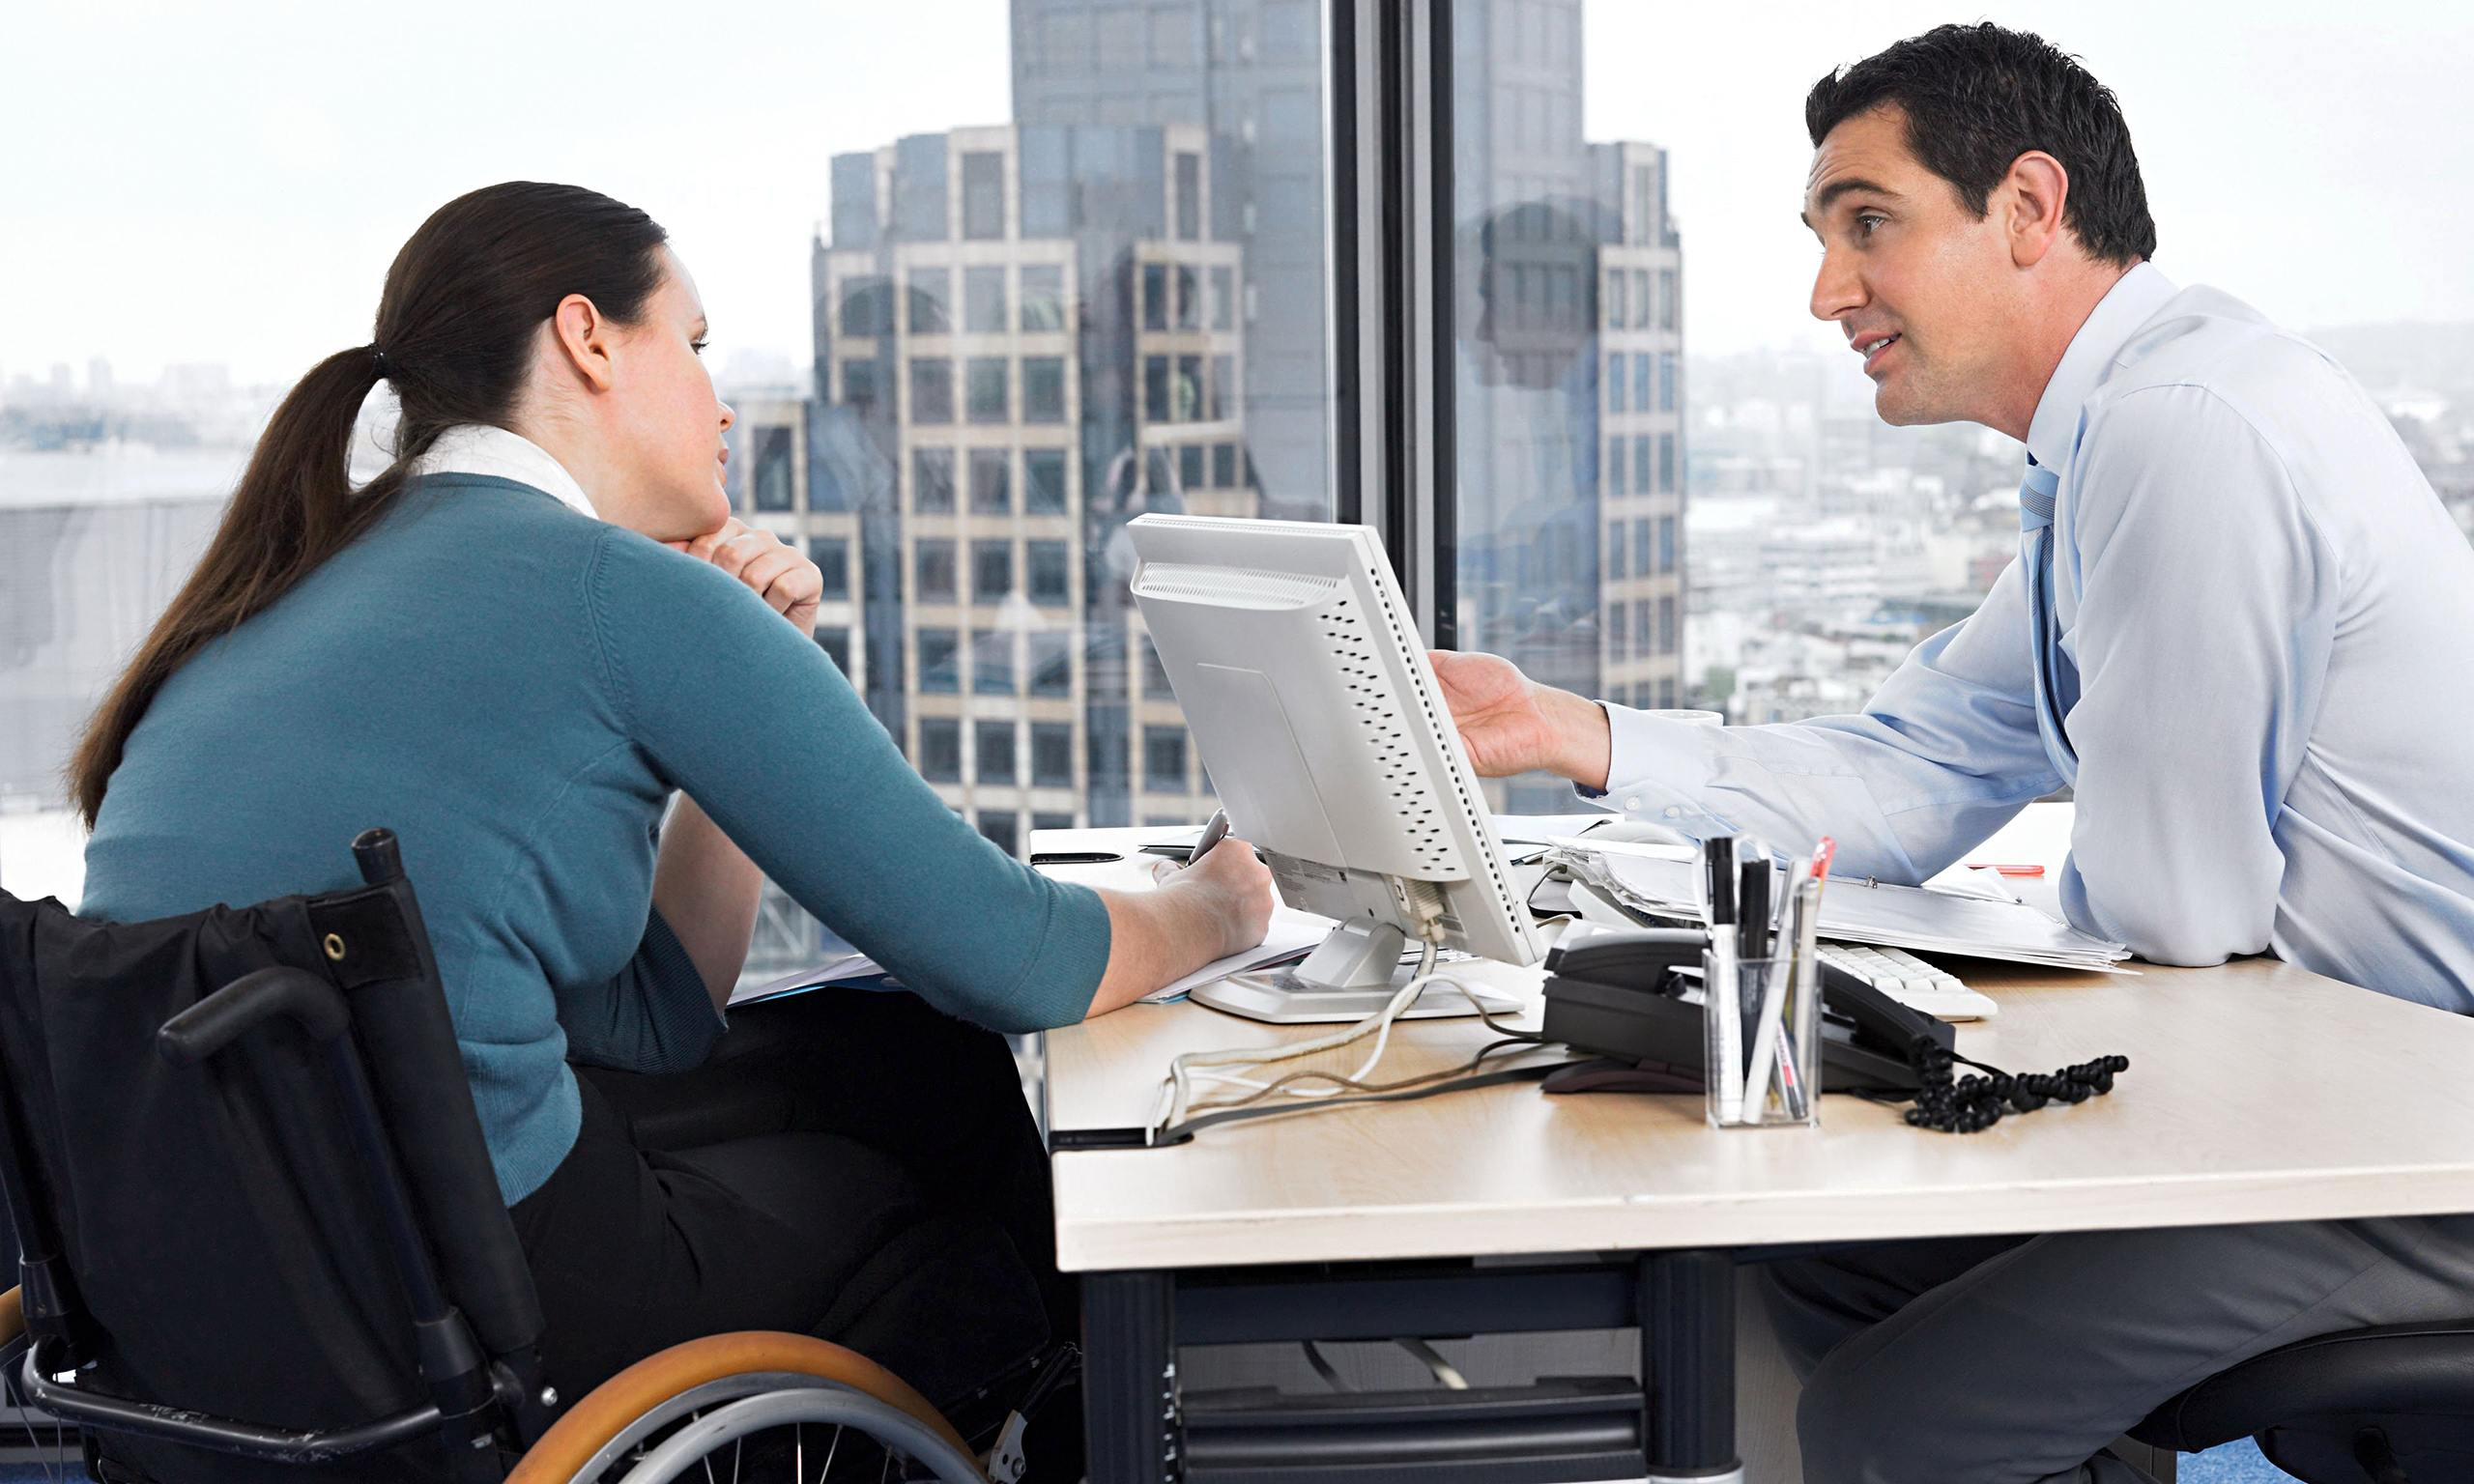 Why employing people with disabilities makes sound business sense